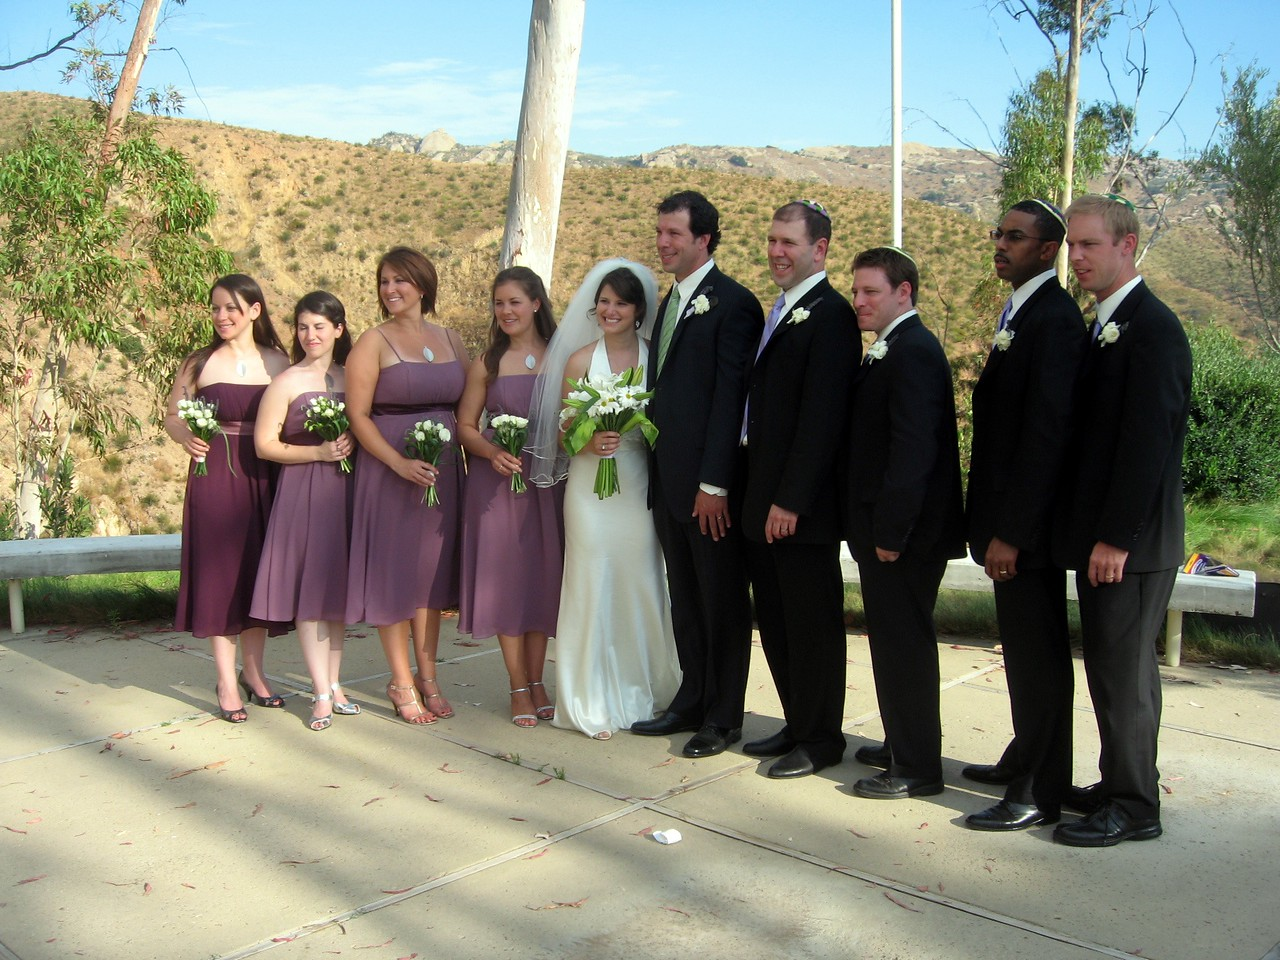 Abby and Avram with bridesmaids Rebecca (l), Vicki, Courtney, and Sarah; and groomsmen David, Jann, LaSalle, and Mark